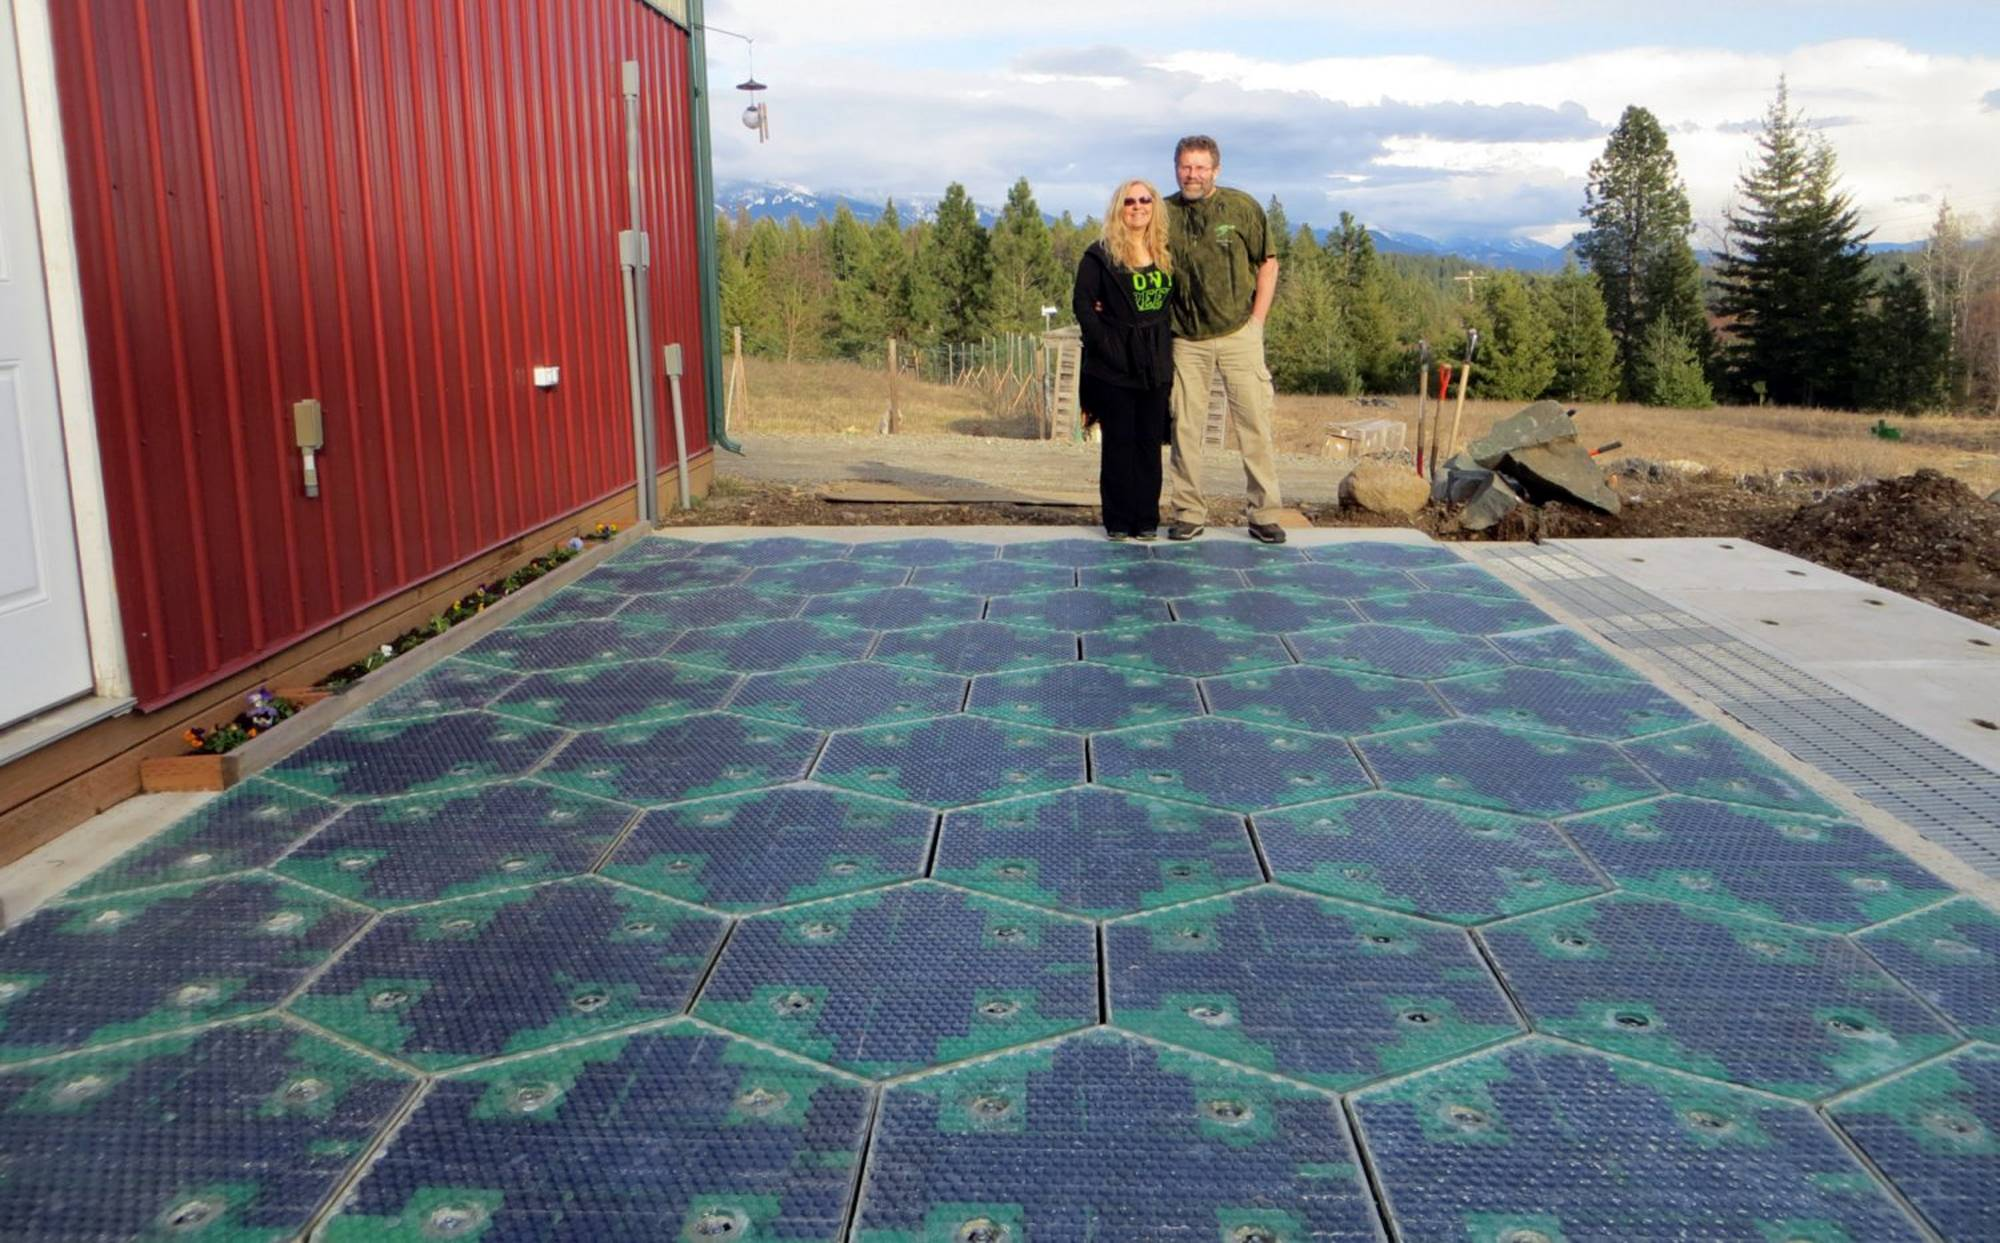 Solar Roadways, Scott and Julie Brusaw on a prototype solar-panel parking area at their company's business in Sandpoint, Idaho.